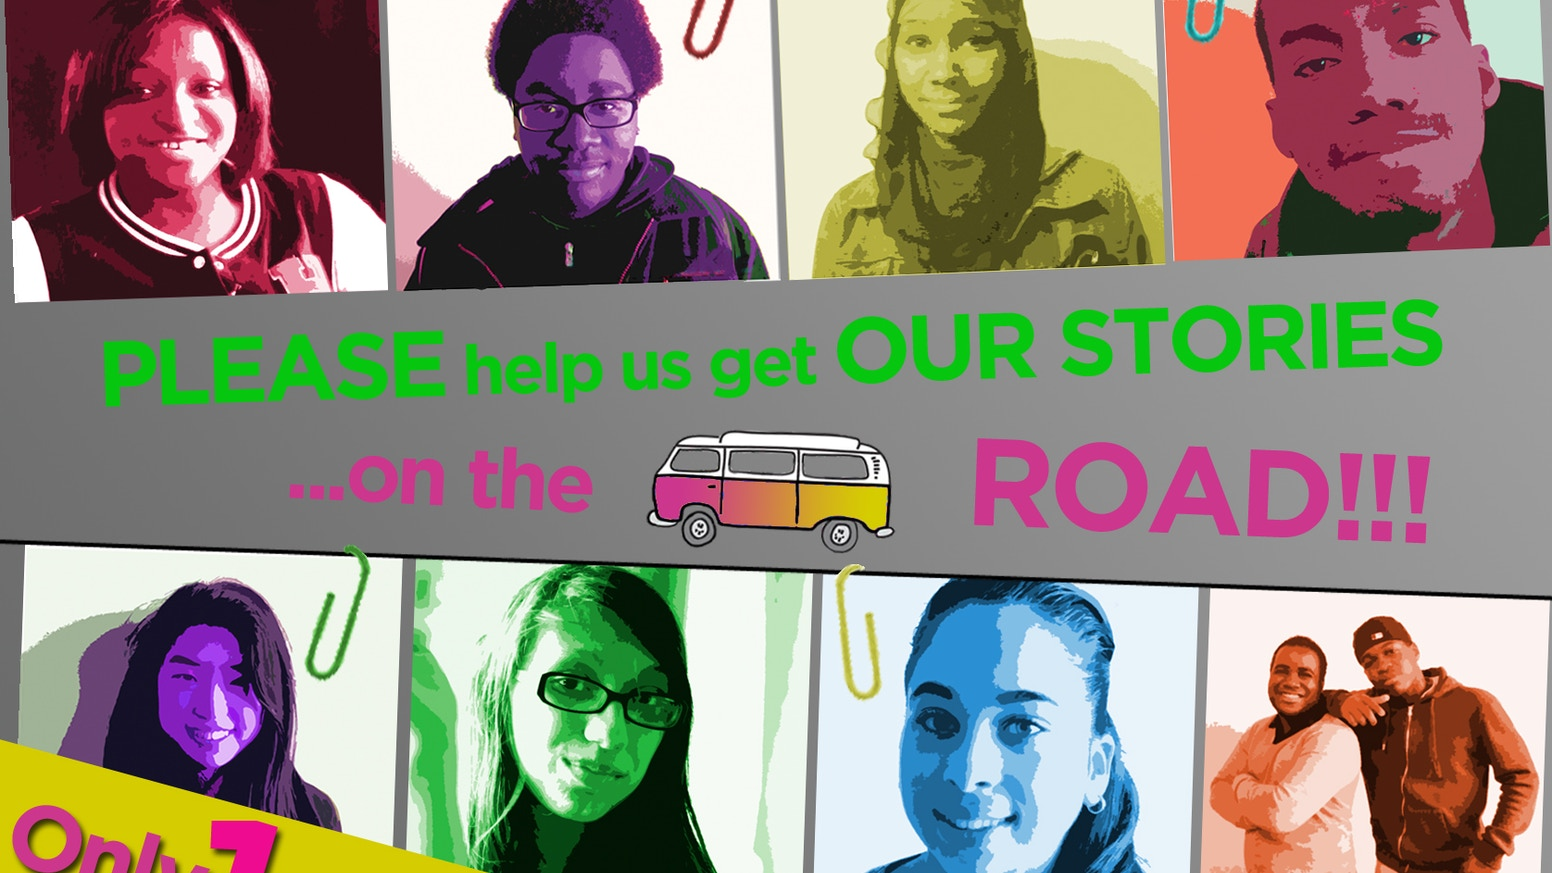 NYC Teens to Launch Summer Traveling Film Festival